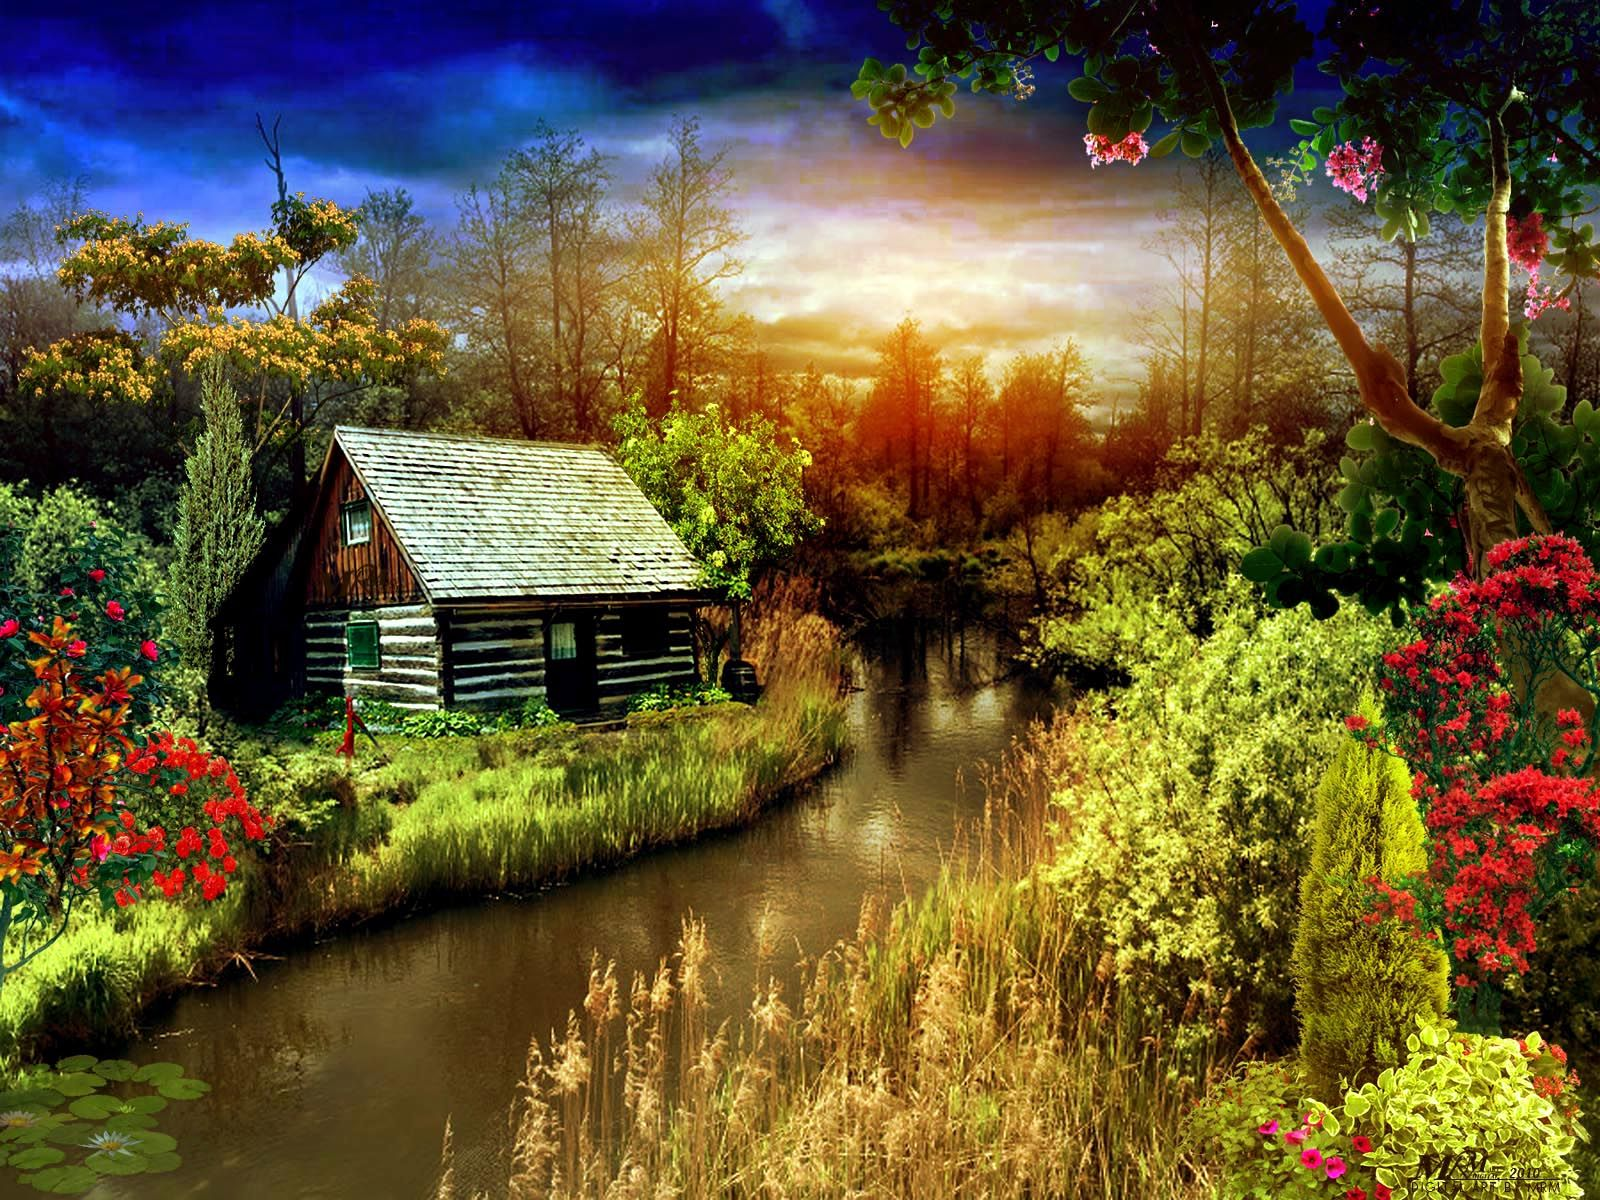 Fantasy Houses Pictures Fantasy Flowers Grass House Landscape Nature Sunset Trees Beautiful Scenery Nature House Landscape Scenery